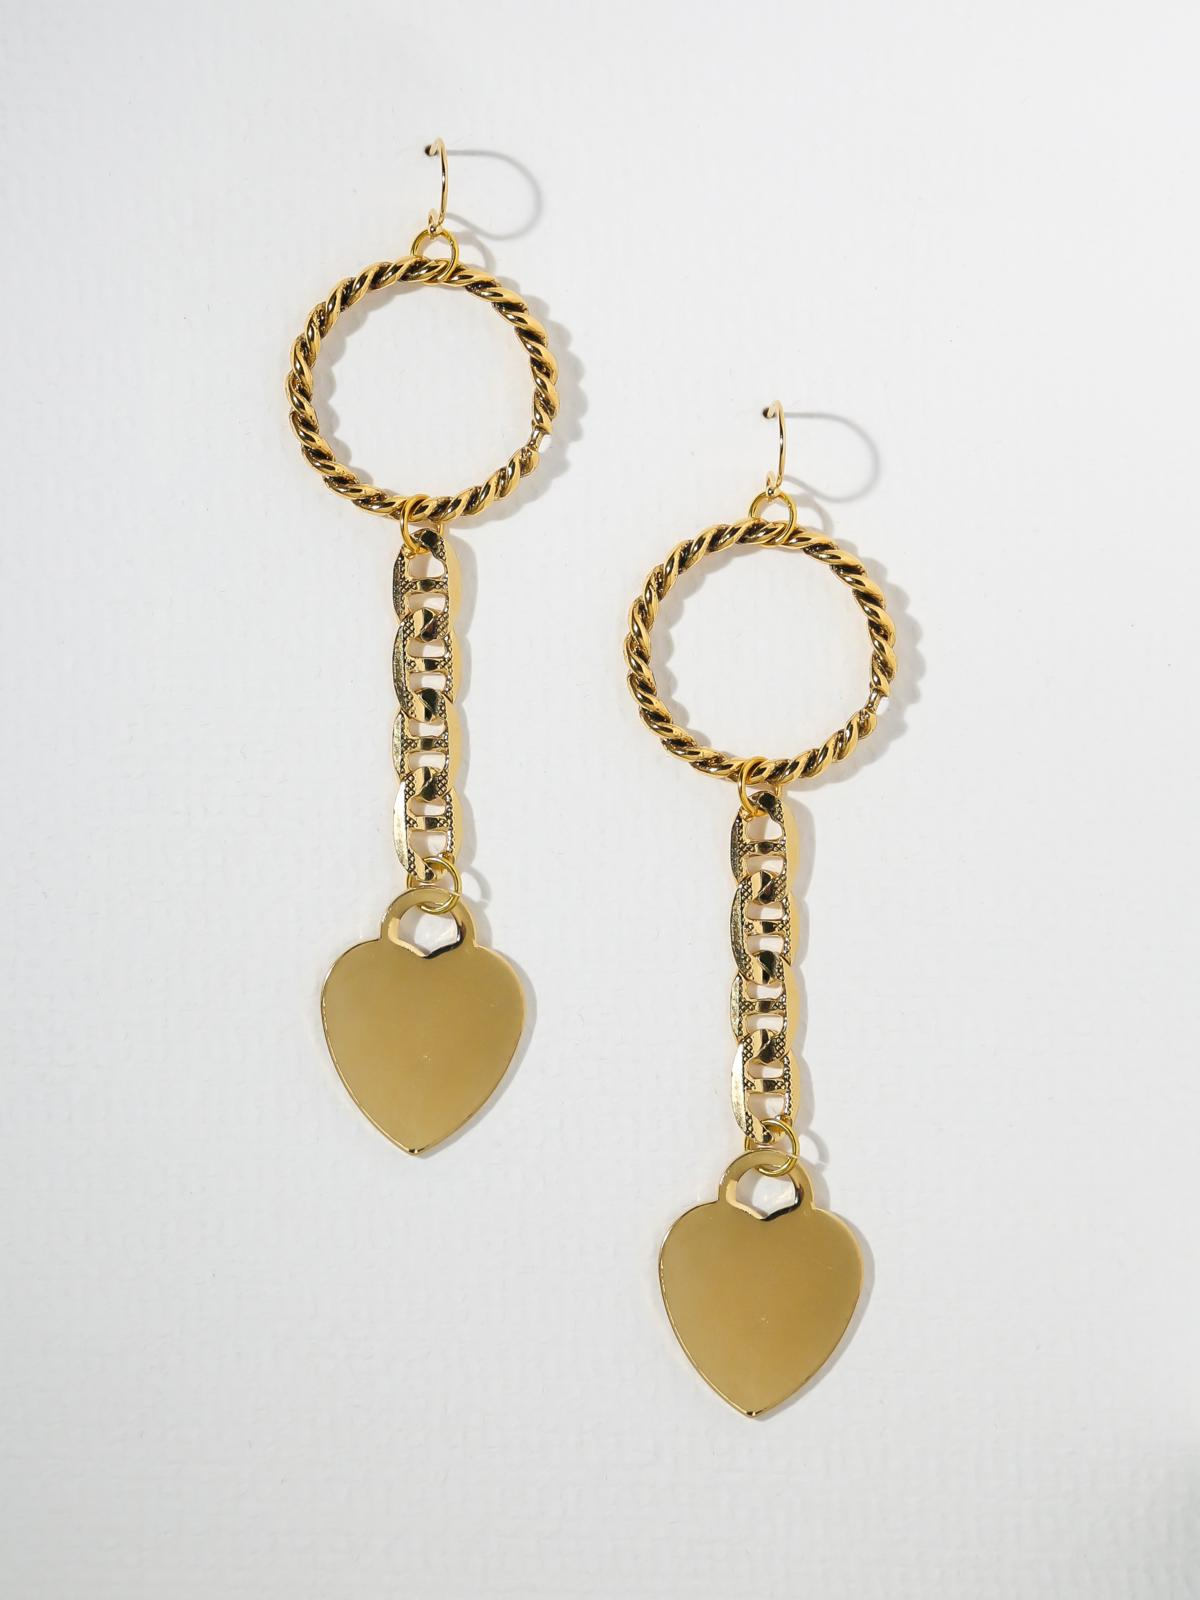 The Roxanne Earrings